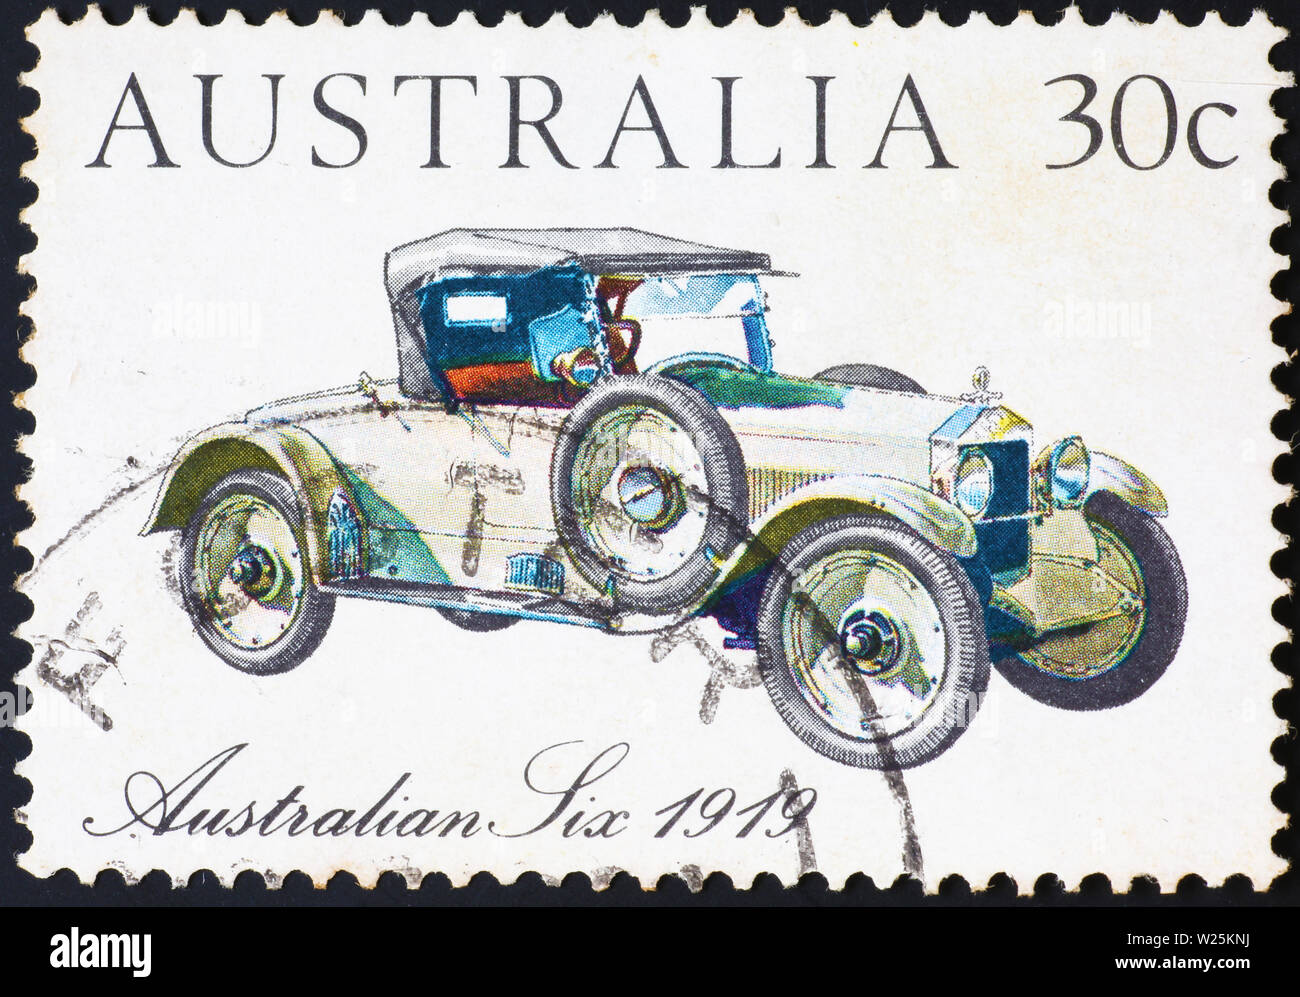 Ancient car of 1919 on australian postage stamp - Stock Image